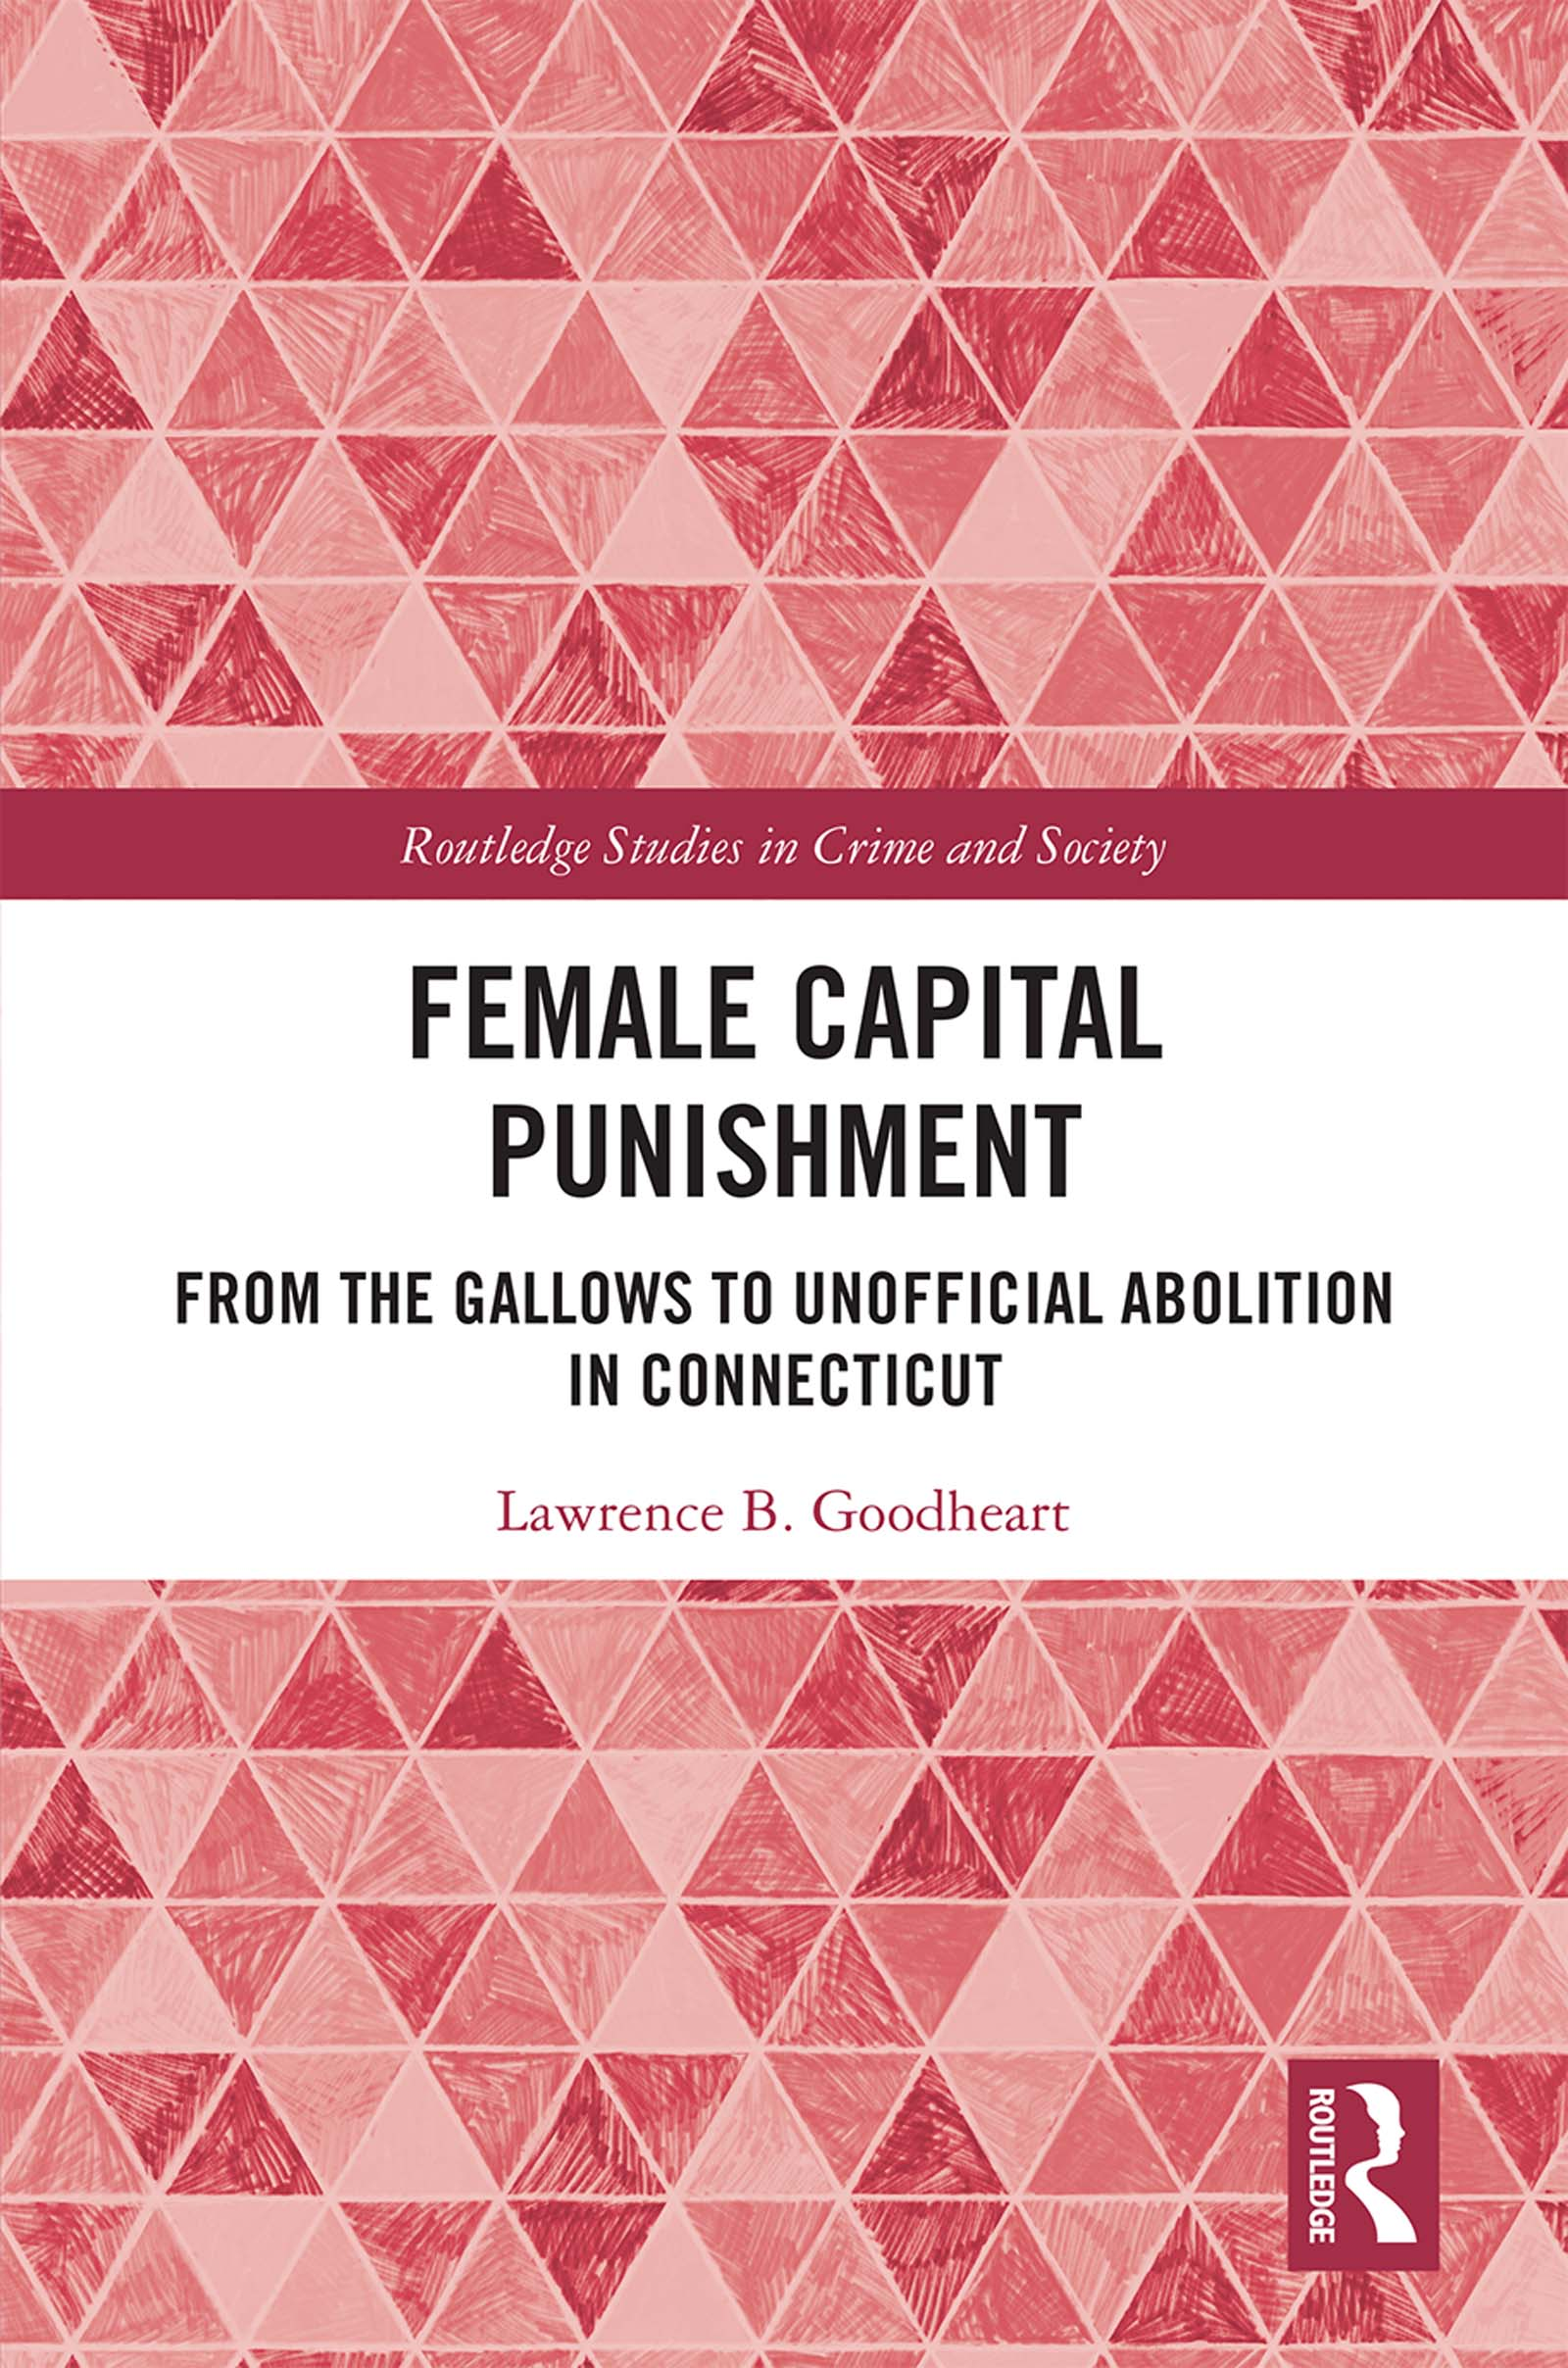 Female Capital Punishment: From the Gallows to Unofficial Abolition in Connecticut book cover